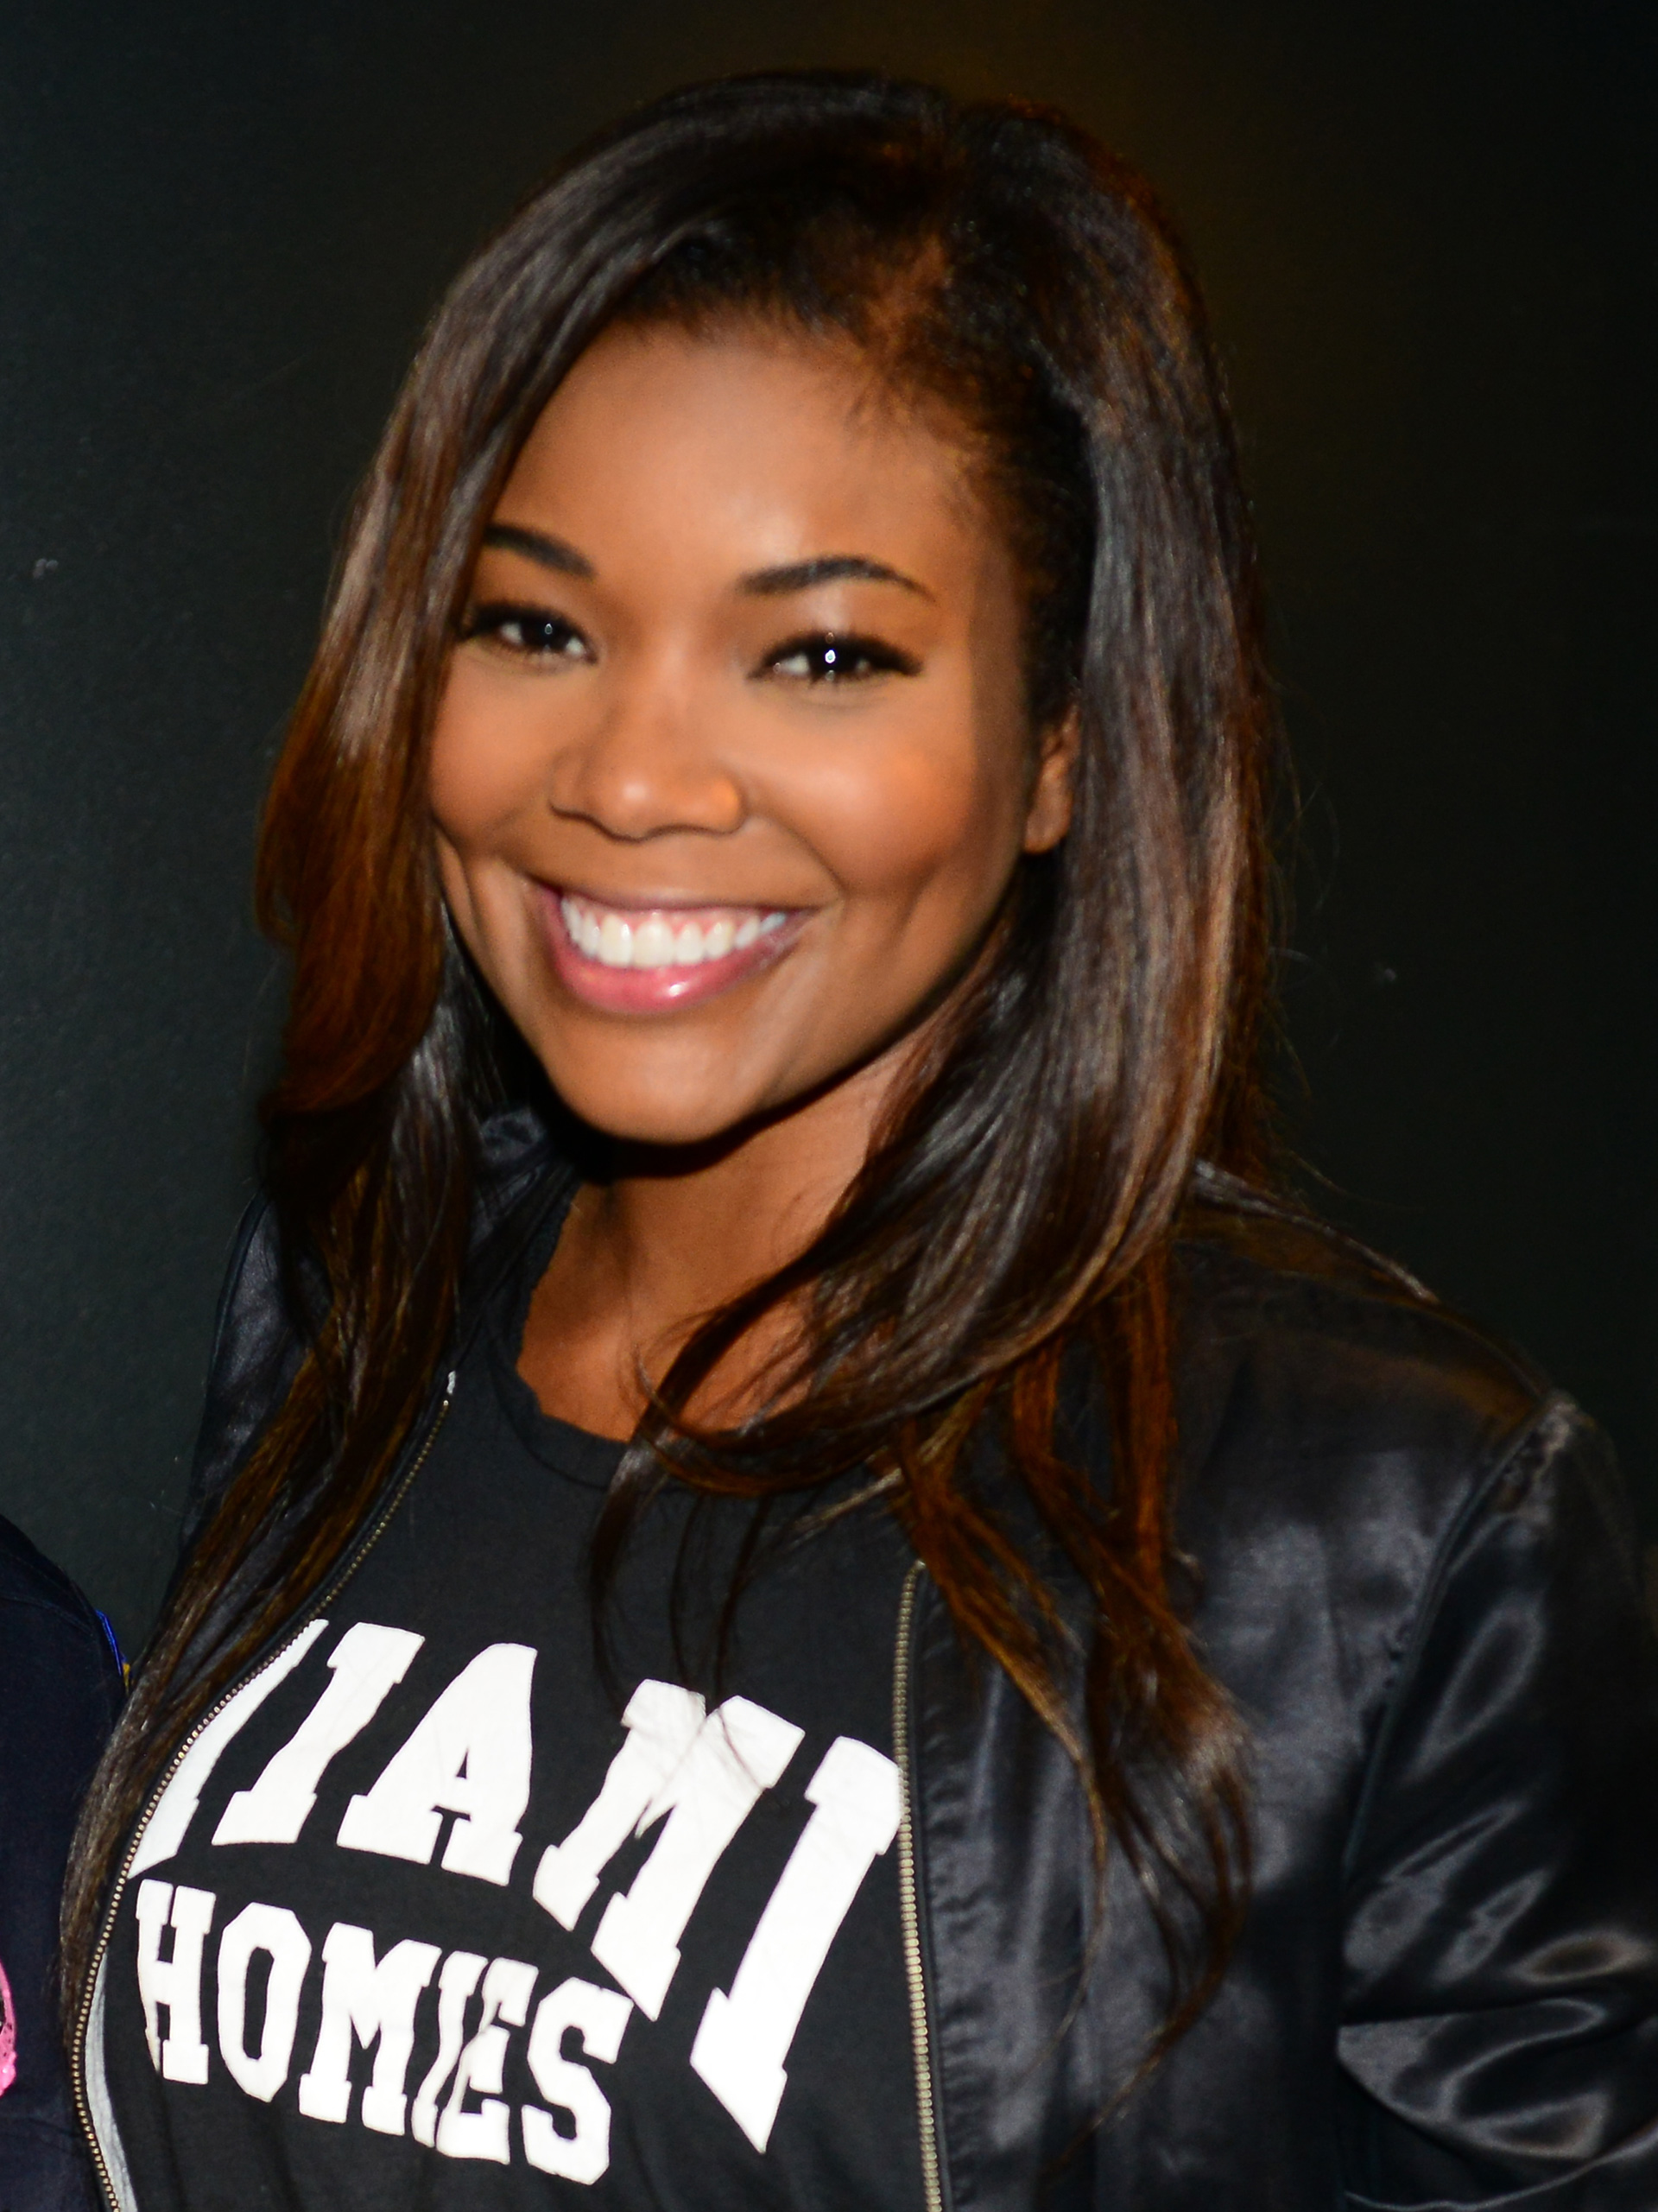 Best overall makeup: Gabrielle Union